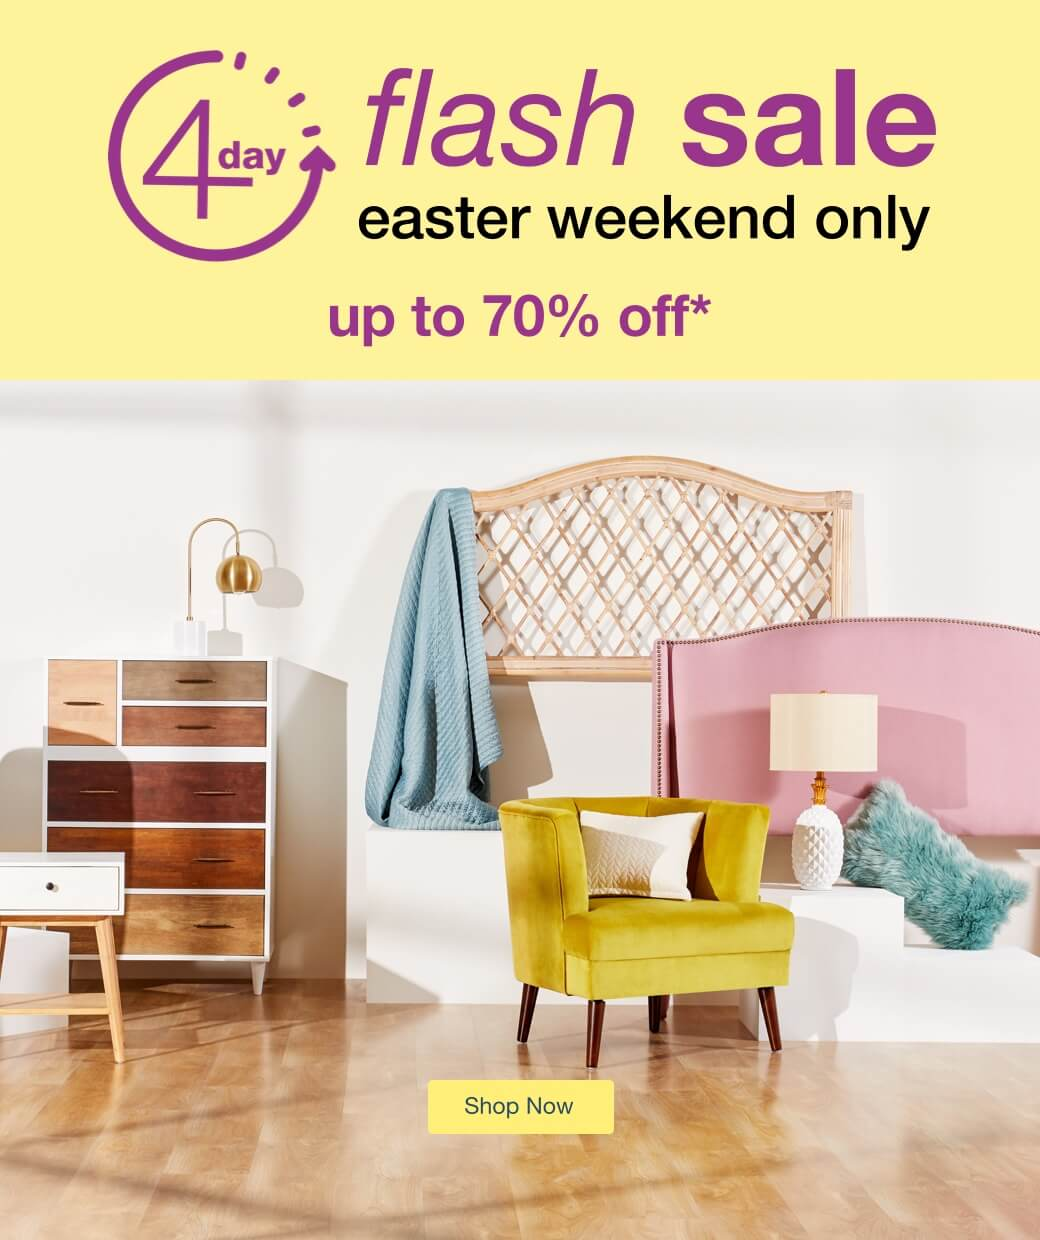 Easter 4-Day Flash Sale